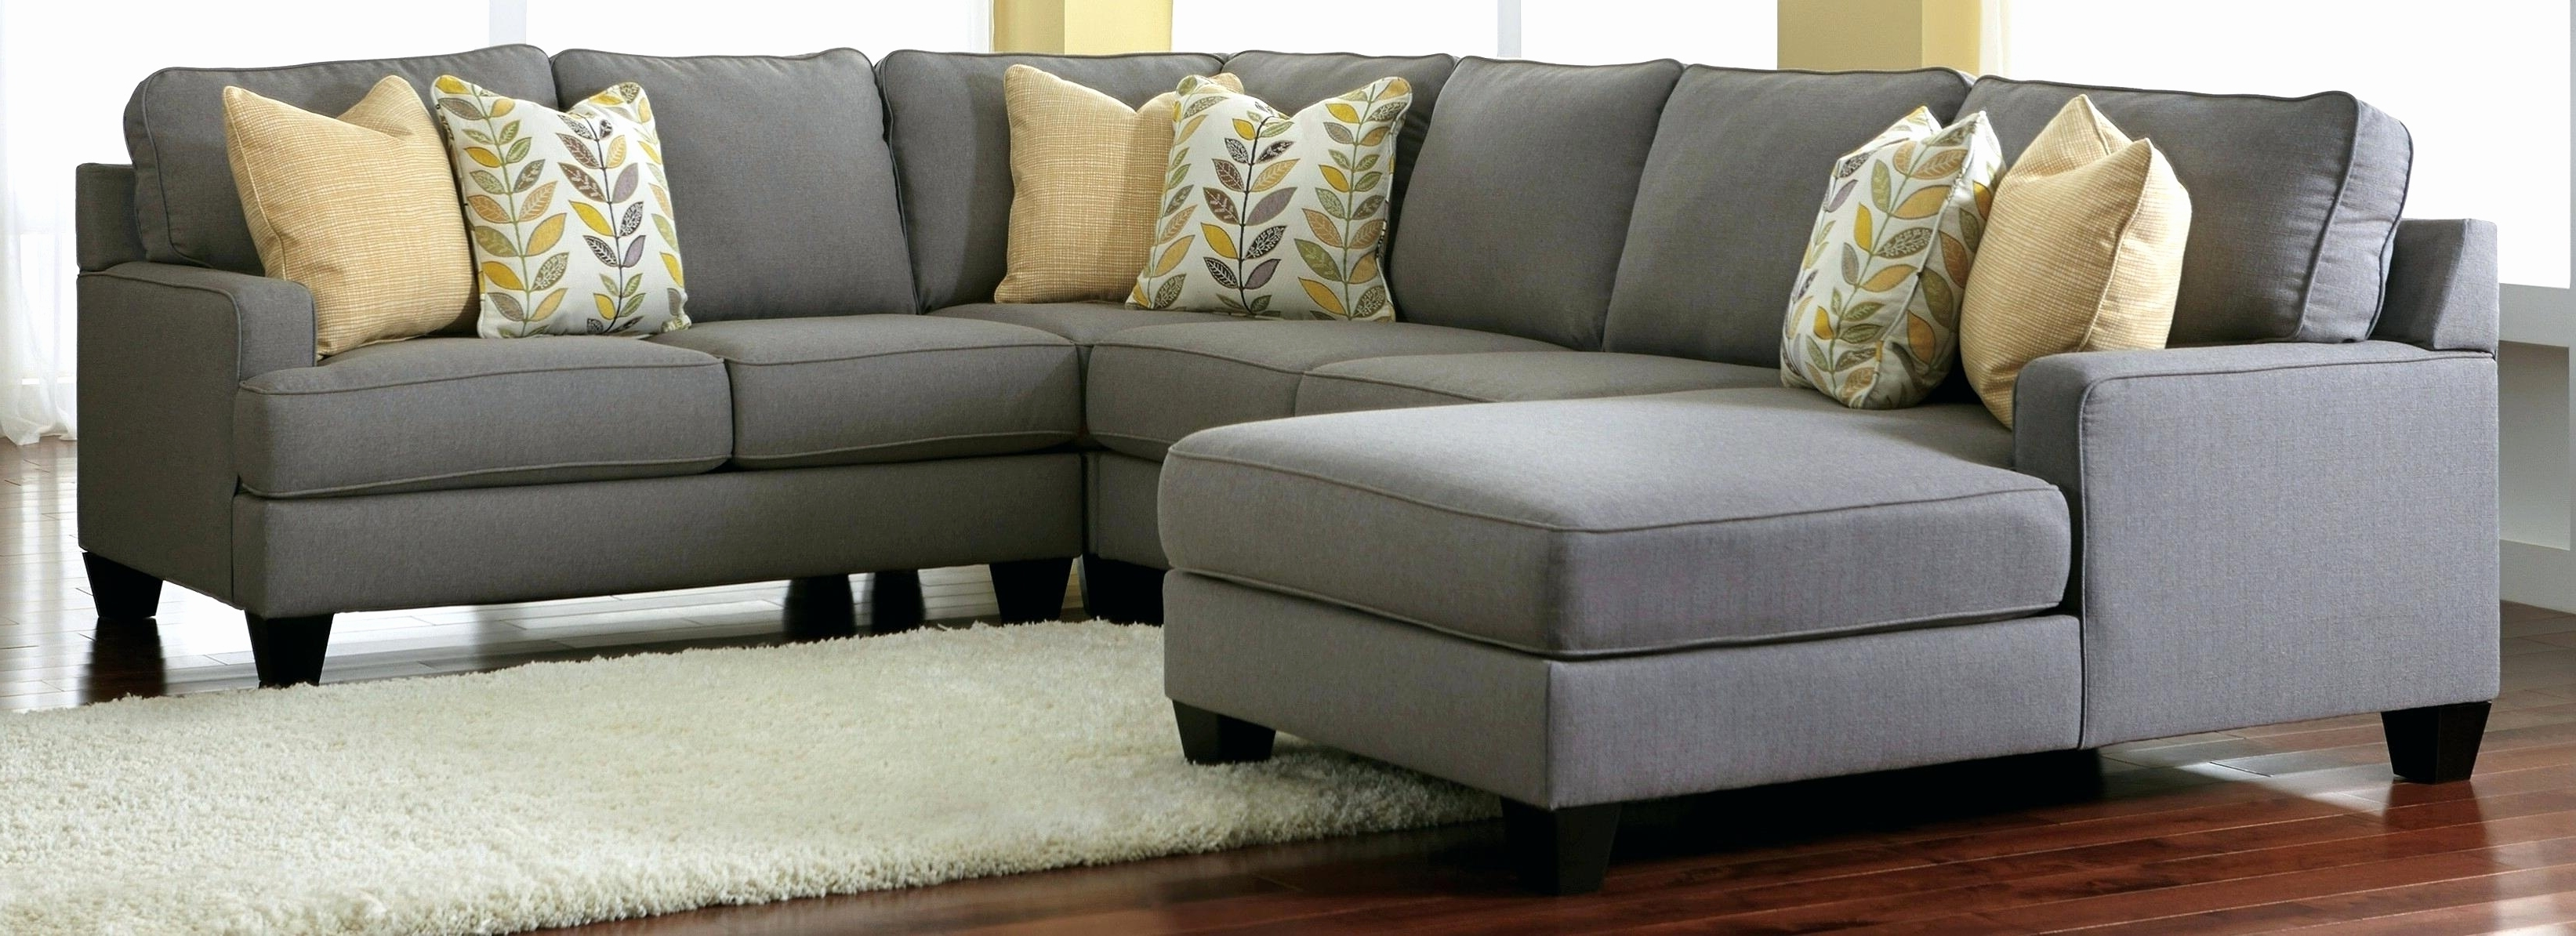 Latest Grey Sectional Sofas With Chaise Regarding New Charcoal Grey Sectional Sofa With Chaise 2018 – Couches And (View 9 of 15)